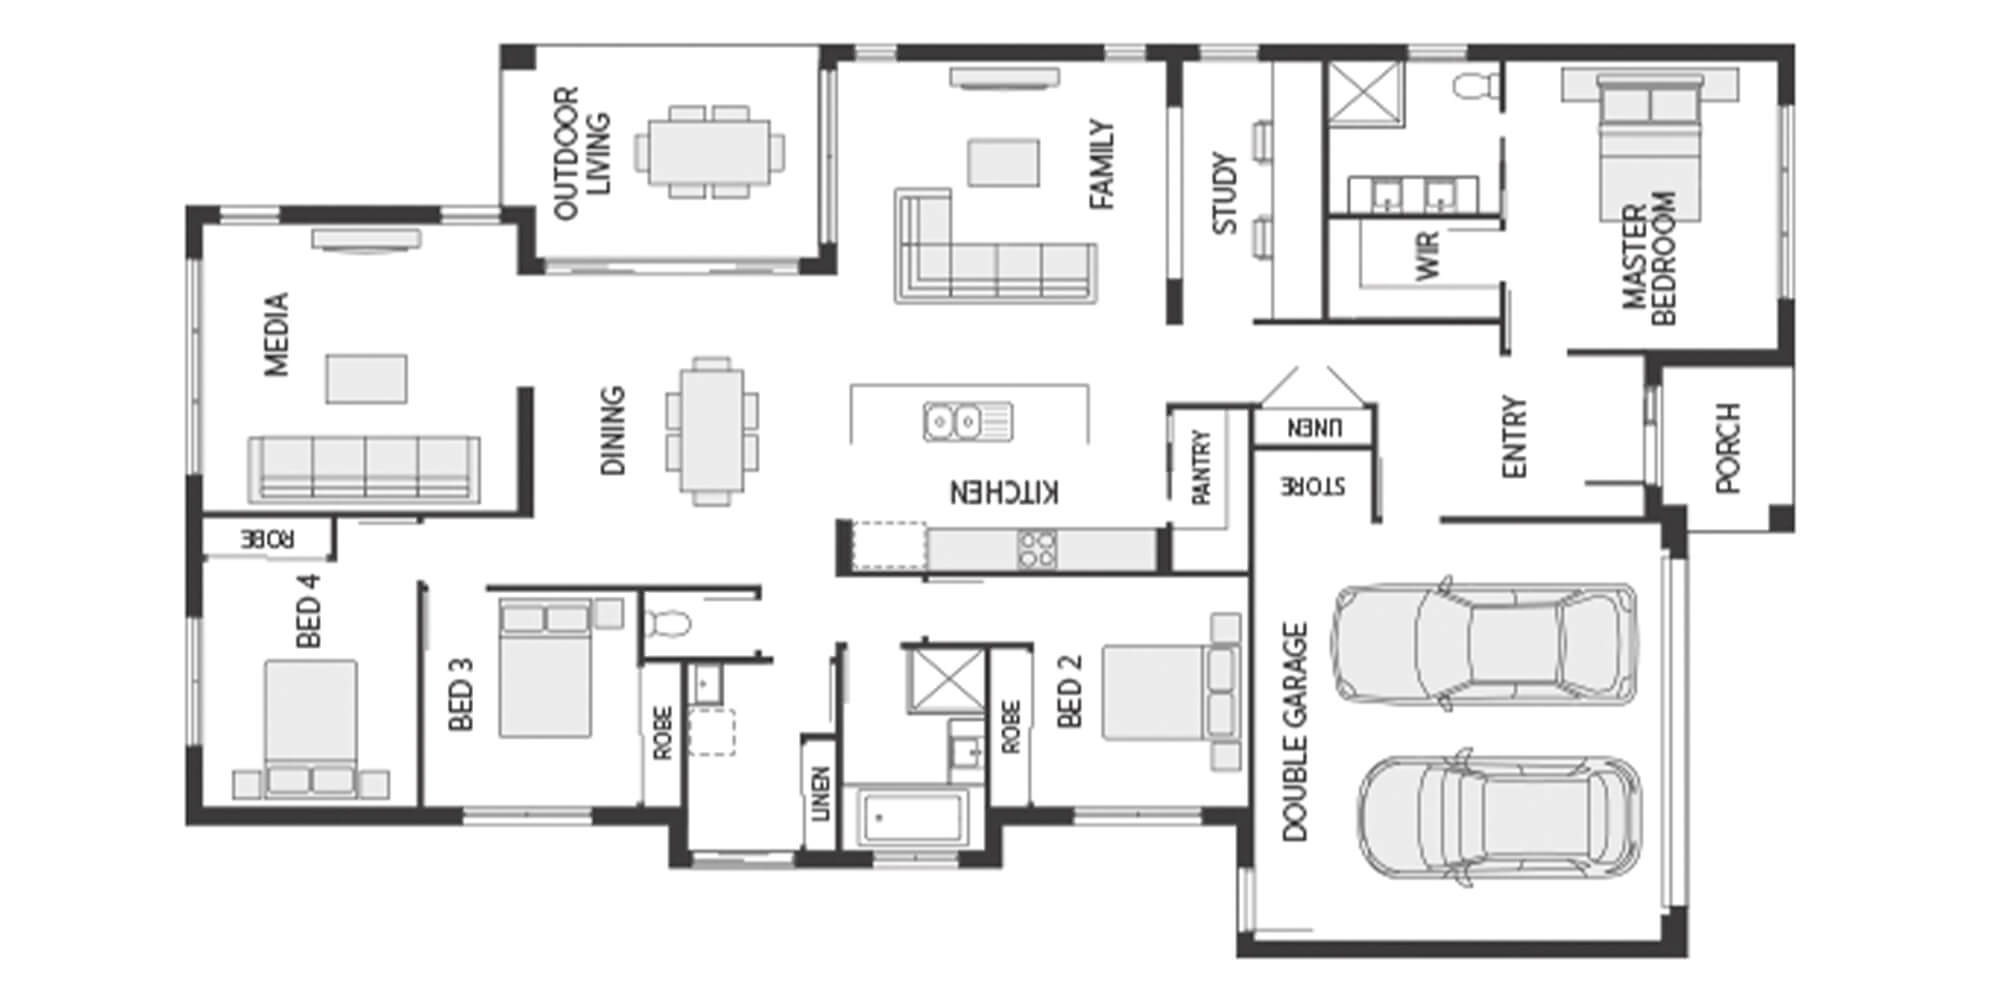 Coral Homes Santorini floorplan